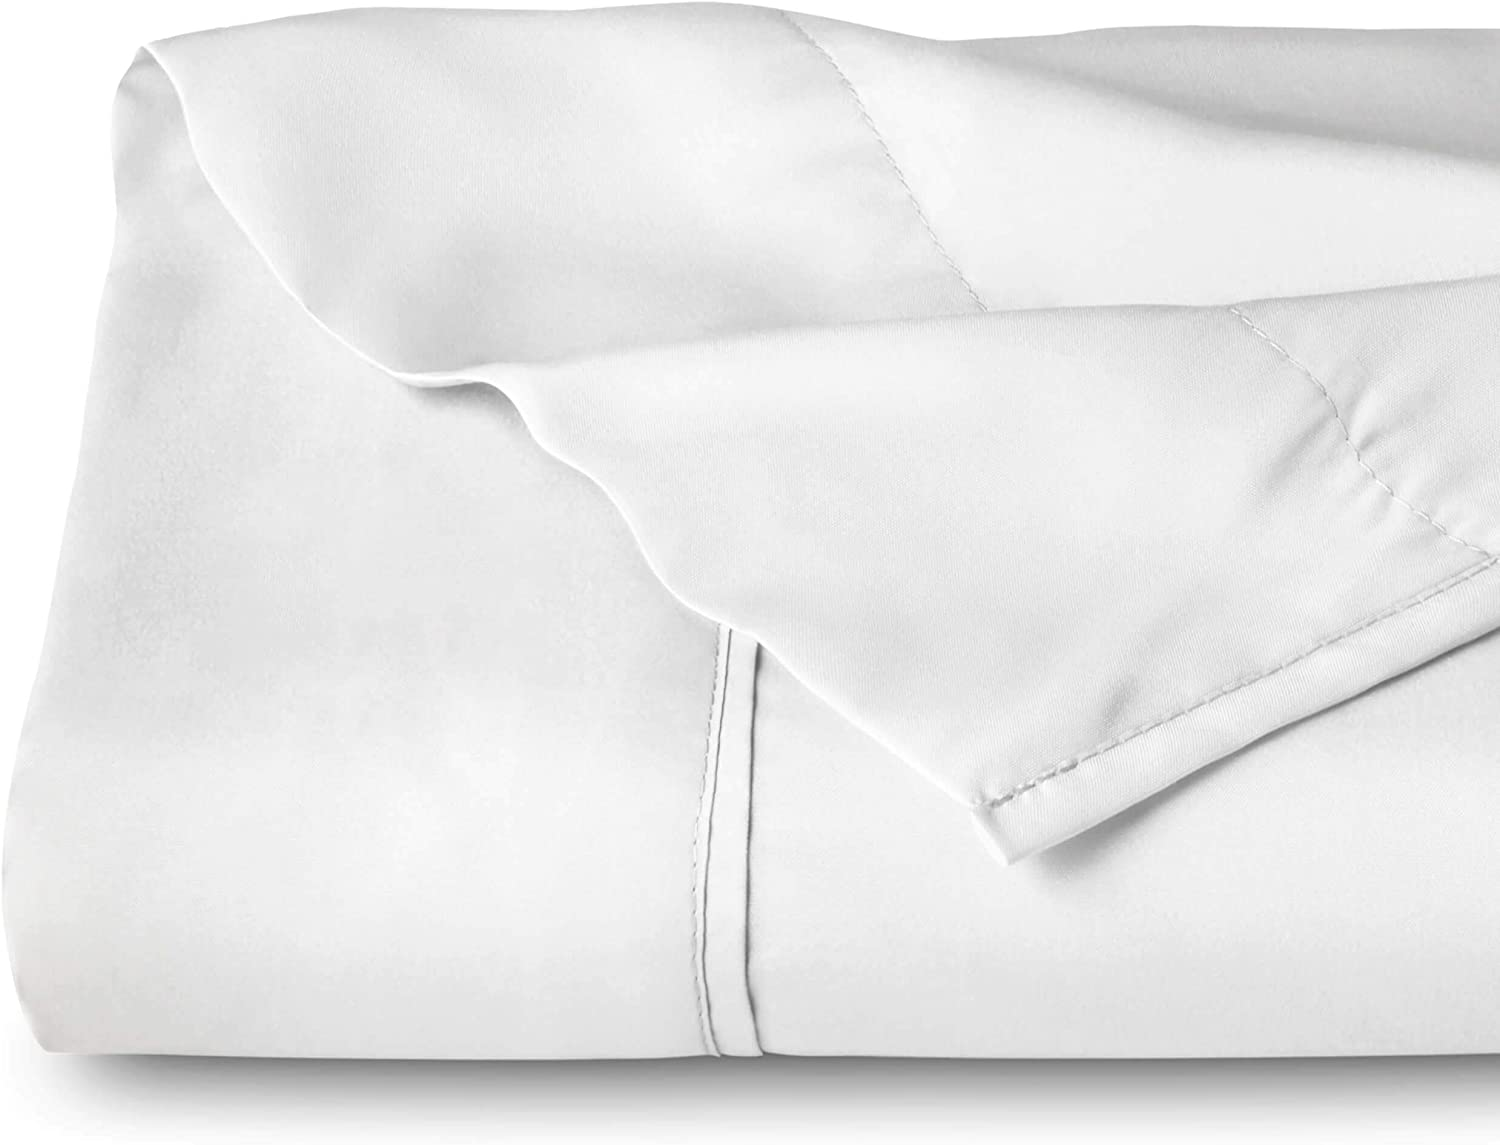 Flat Top Sheet Premium 1800 Ultra-Soft Microfiber Collection - Double Brushed, Hypoallergenic, Wrinkle Resistant, Easy Care (Queen - 1 Pack, White)